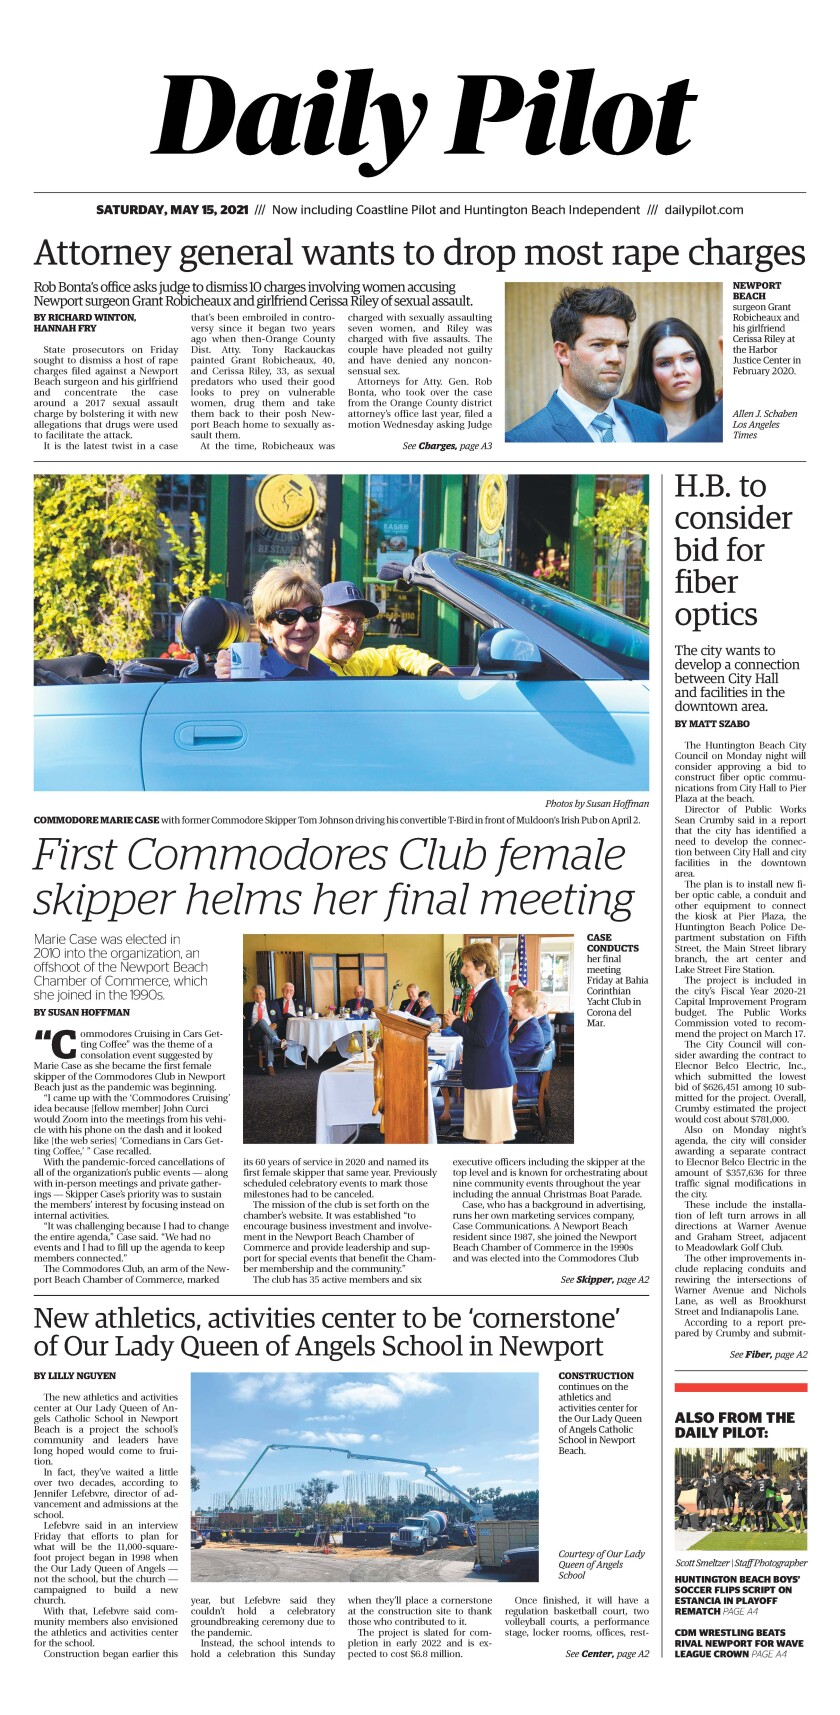 Front page of Daily Pilot e-newspaper for Saturday, May 15, 2021.